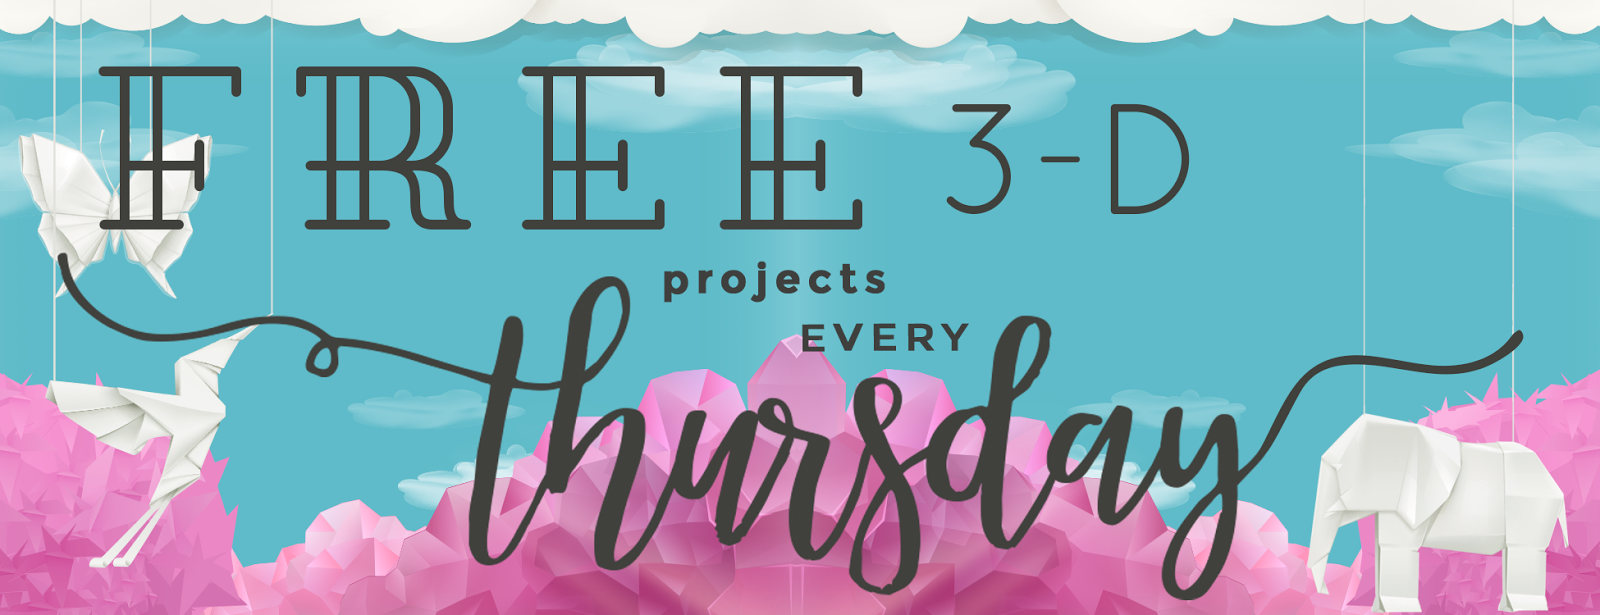 Good Morning Everyone Welcome : Debbie s designs d thursday free project sheet